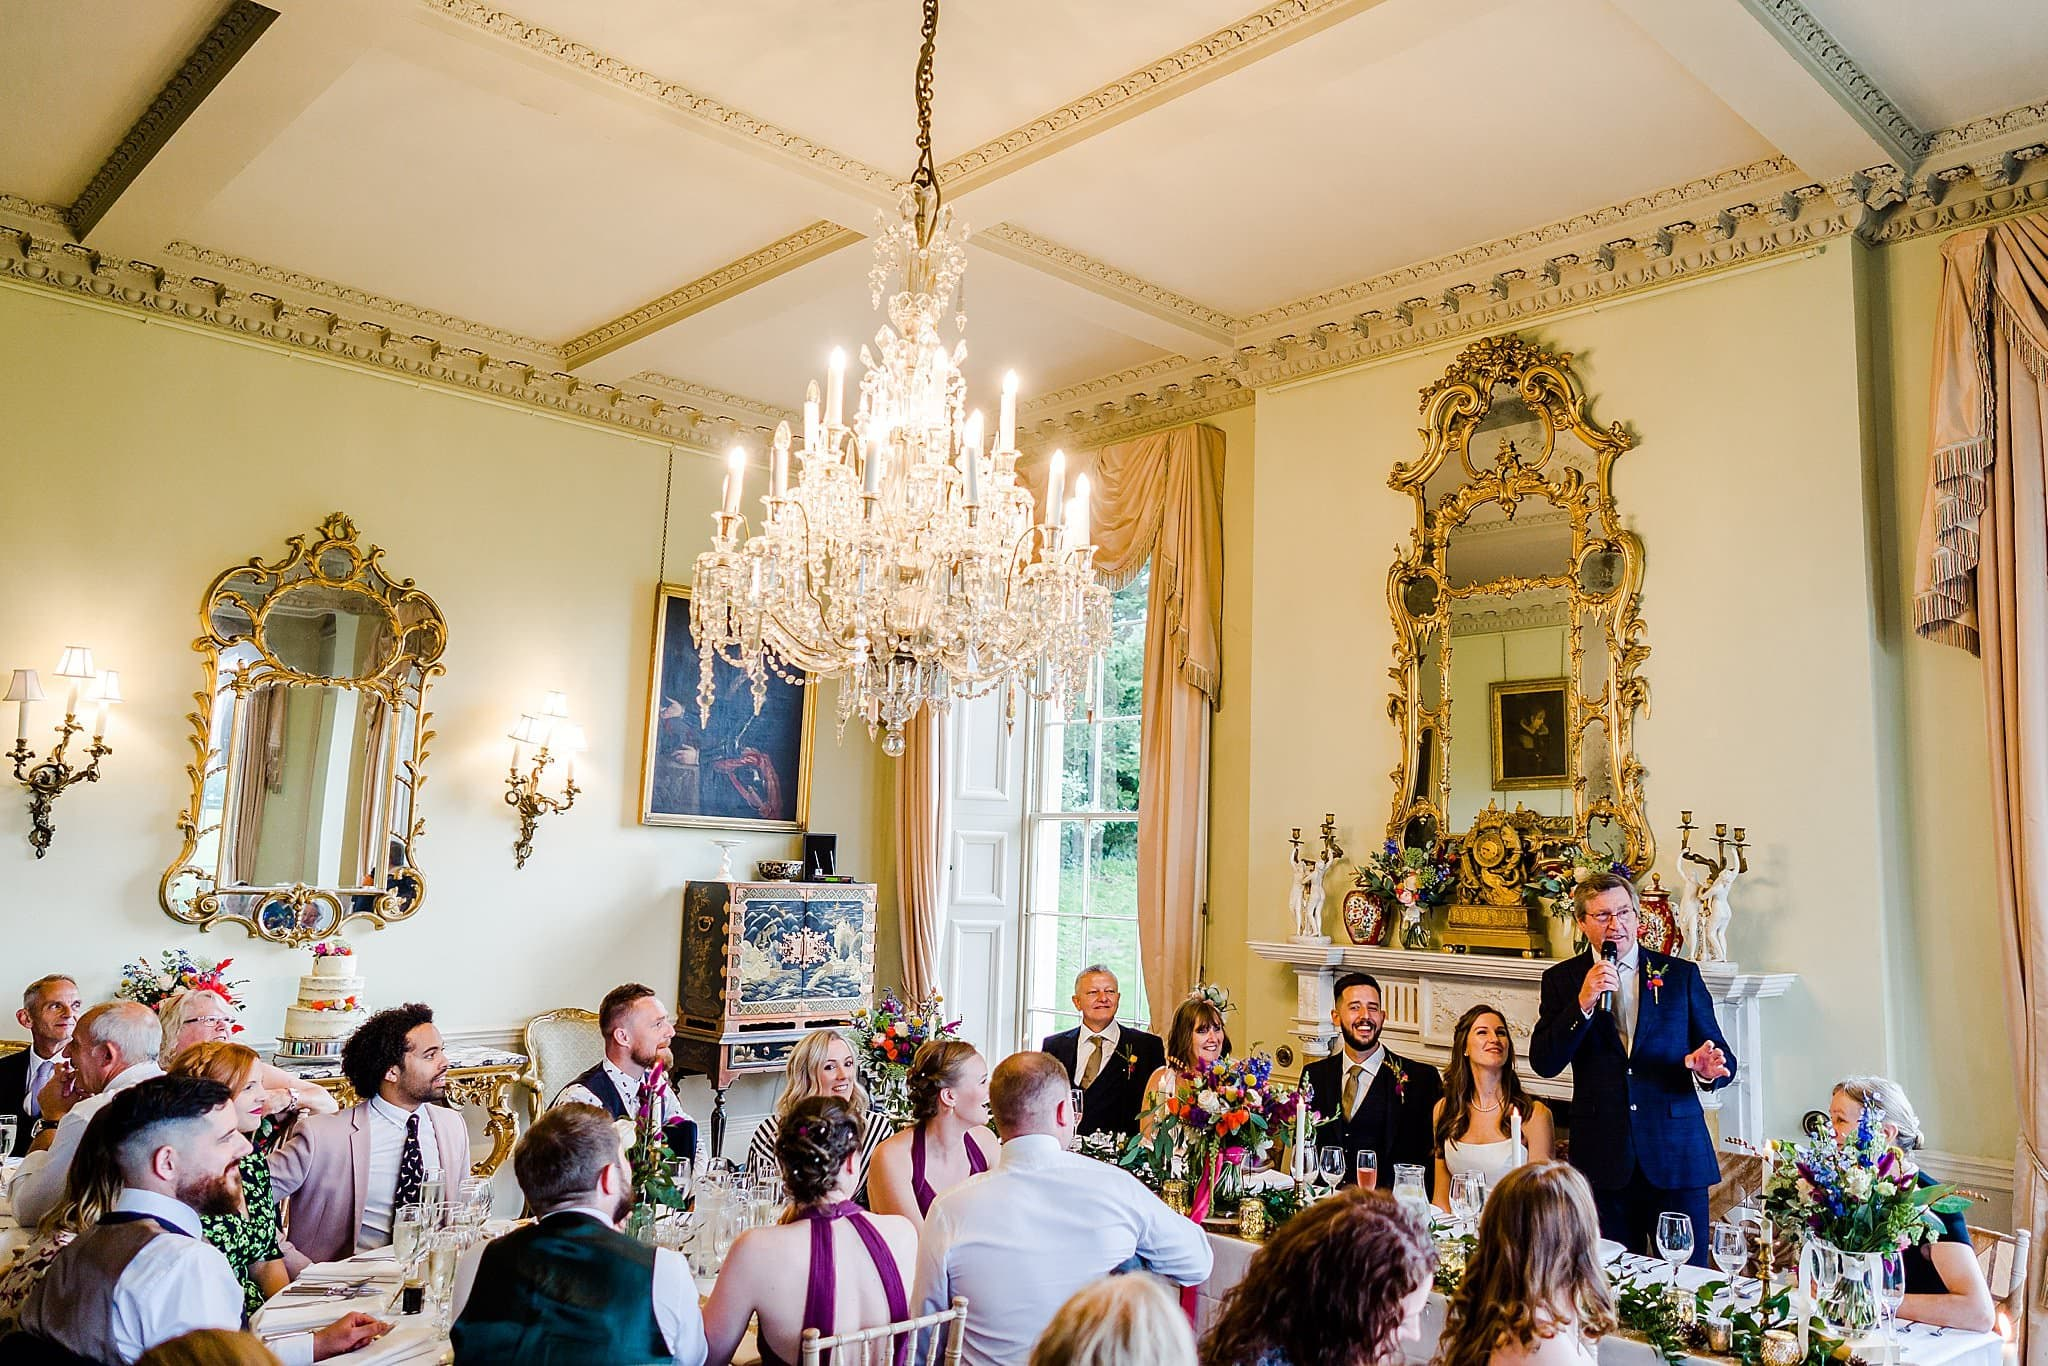 Wide shot of the dining room at Prestwold Hall where the bride's father is giving his speech